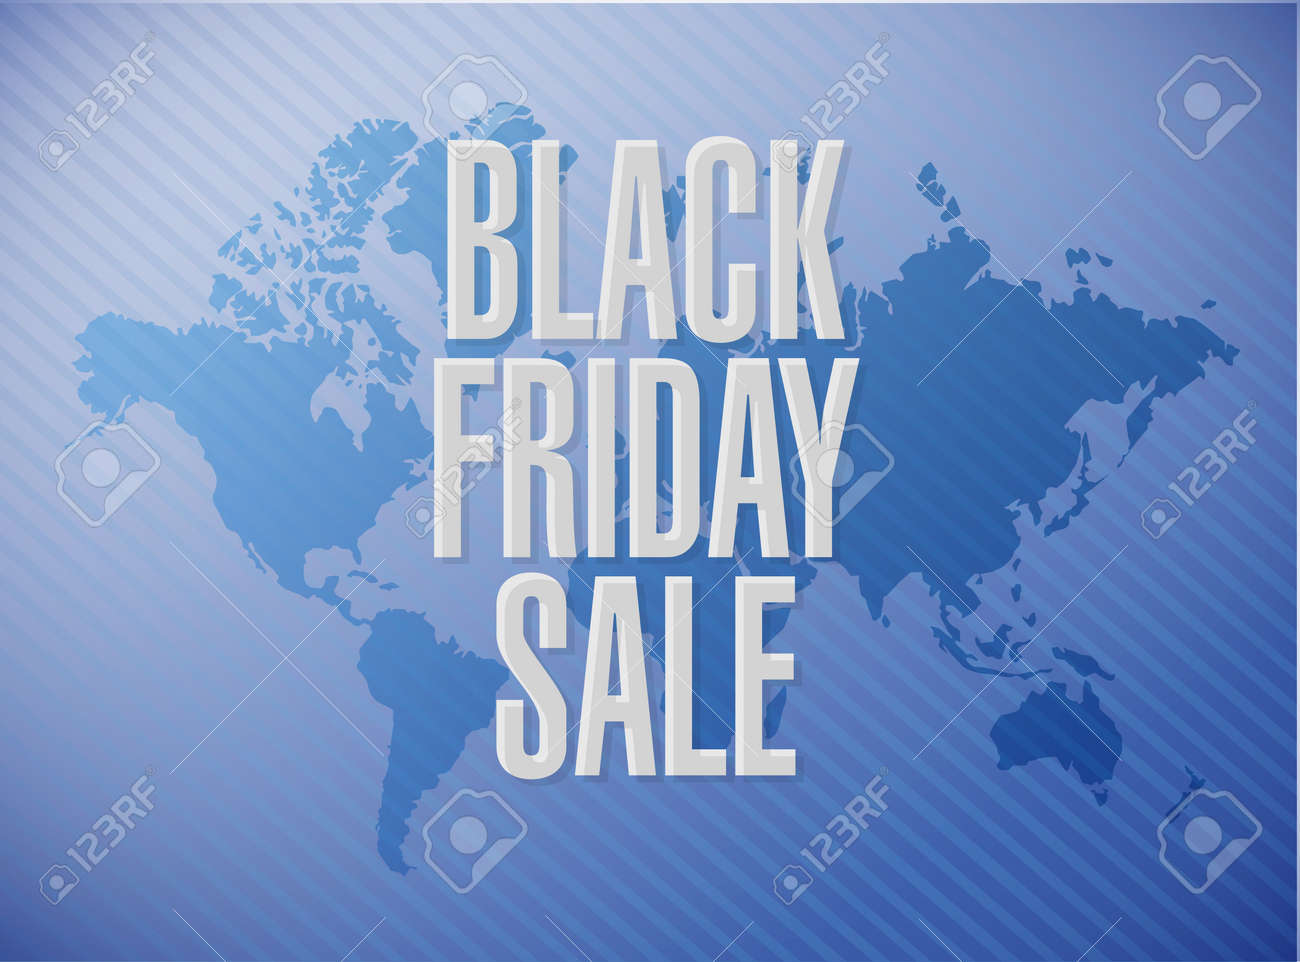 Black Friday sale message concept illustration isolated over..